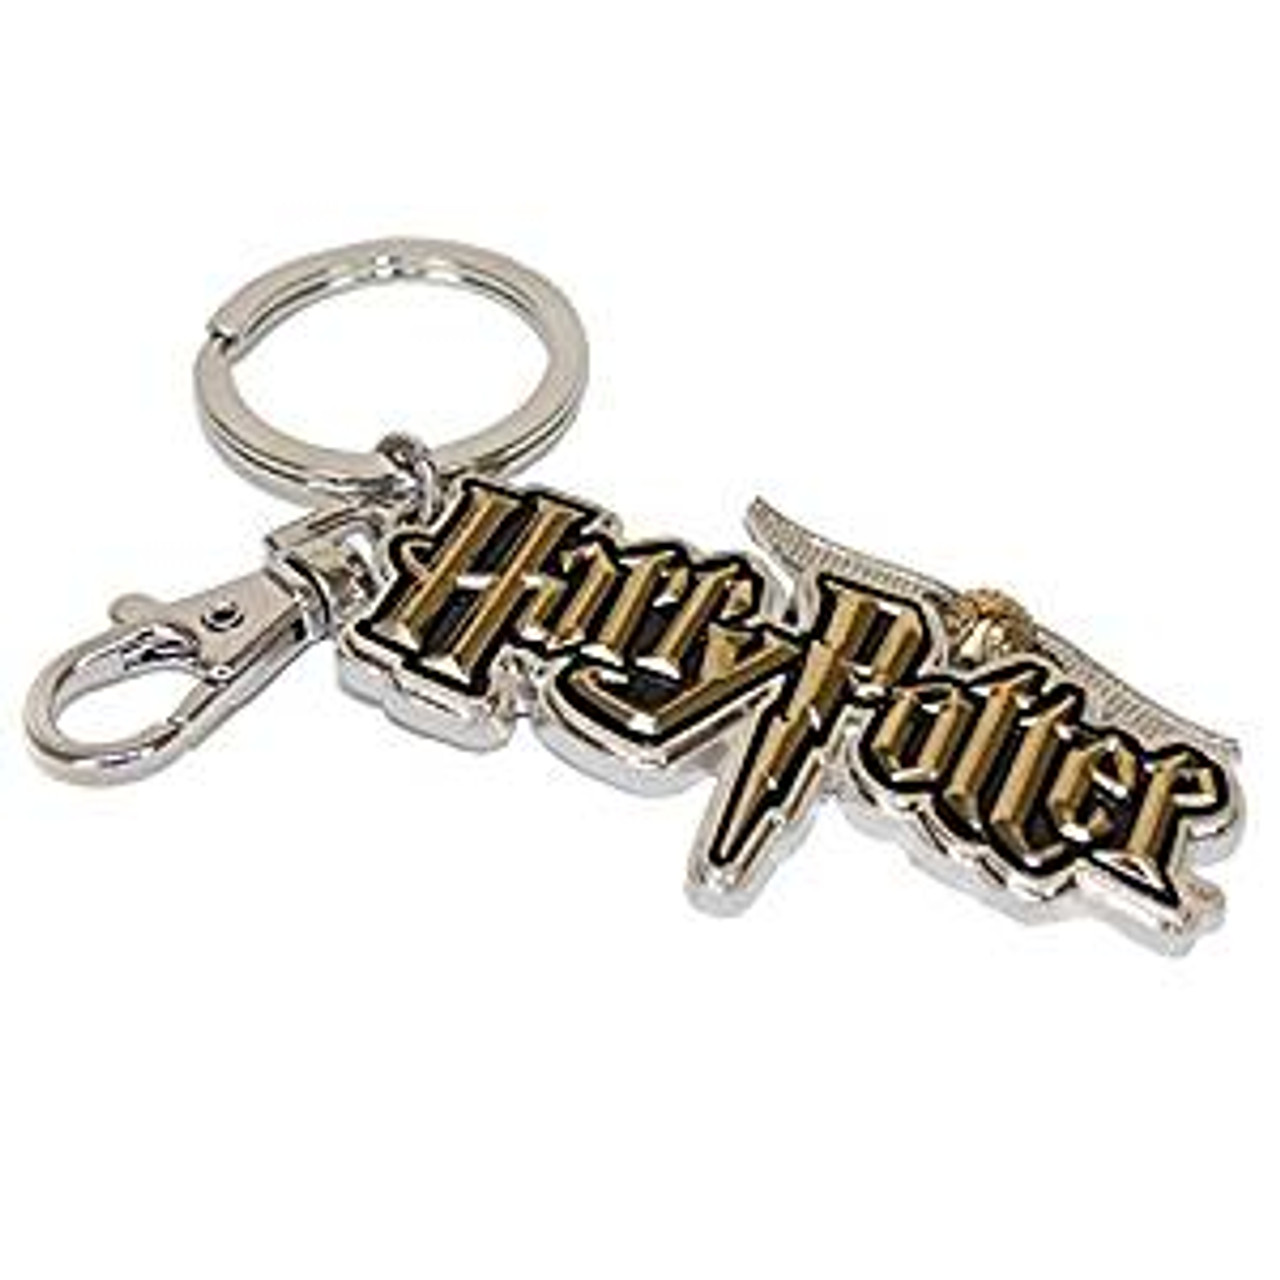 One Size Harry Potter Hogwarts Crest Pewter Key Chain Metallic